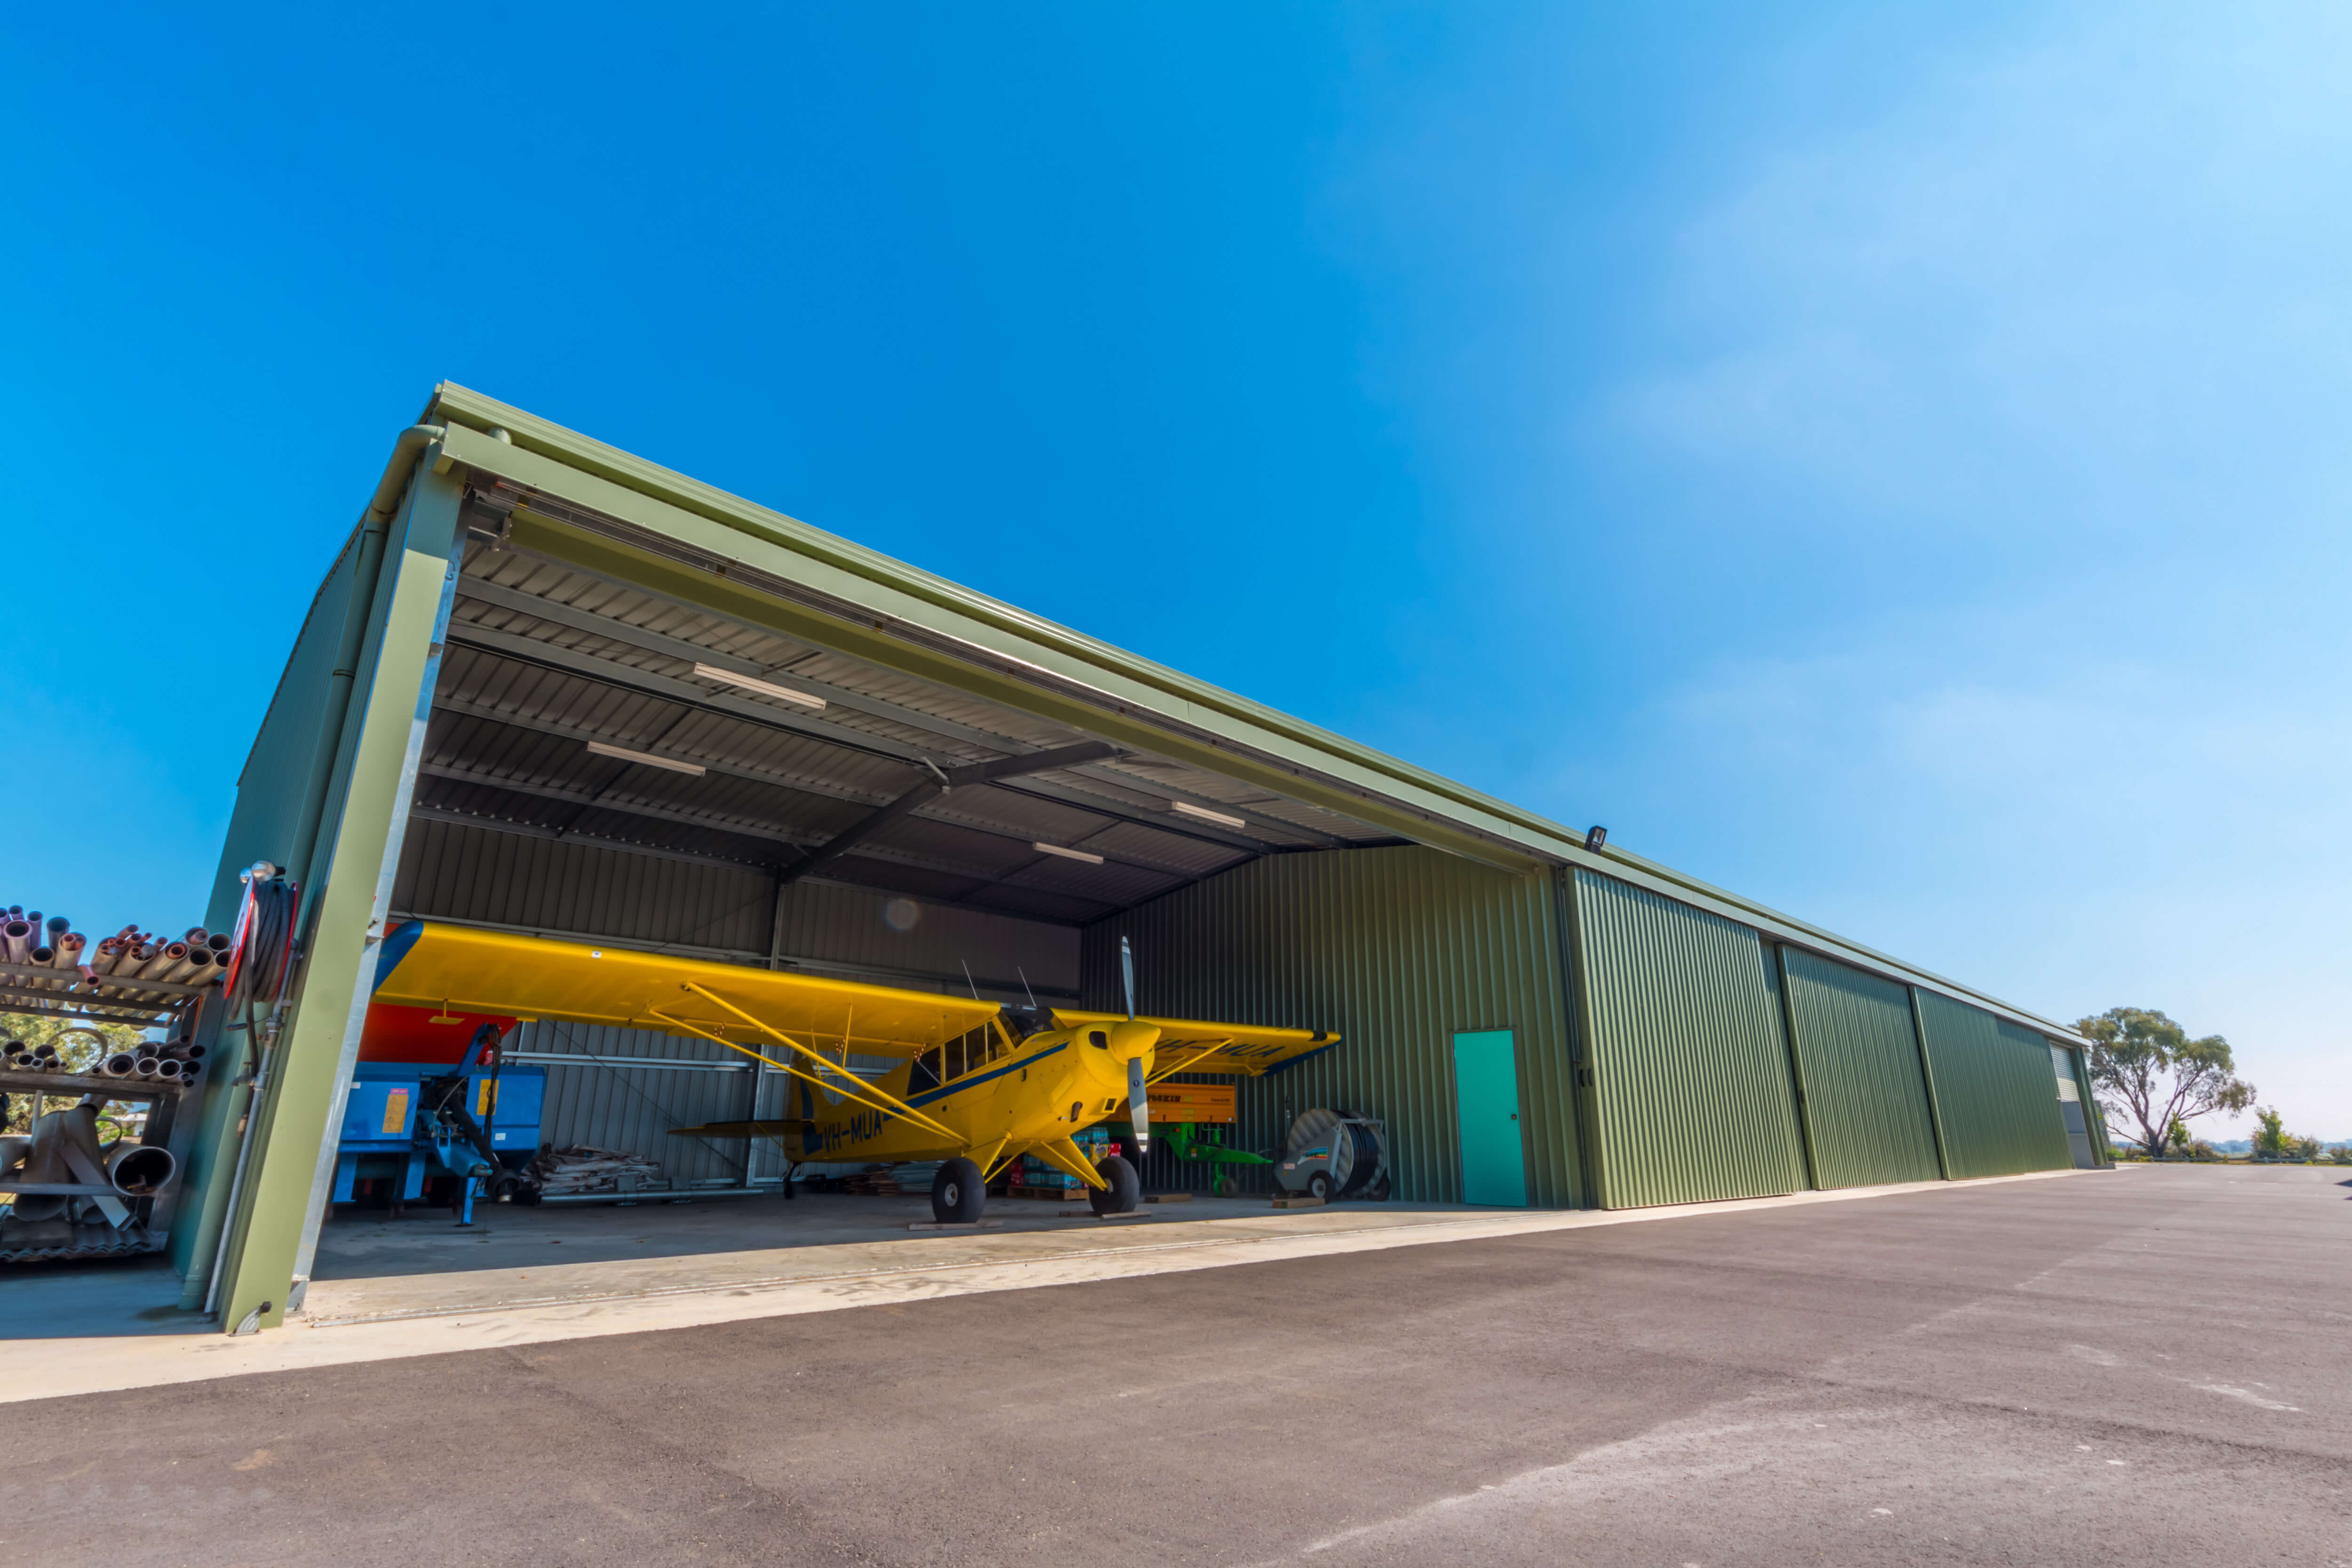 SOLID Workshop and Hangar Pale Eucalypt - Our Resources